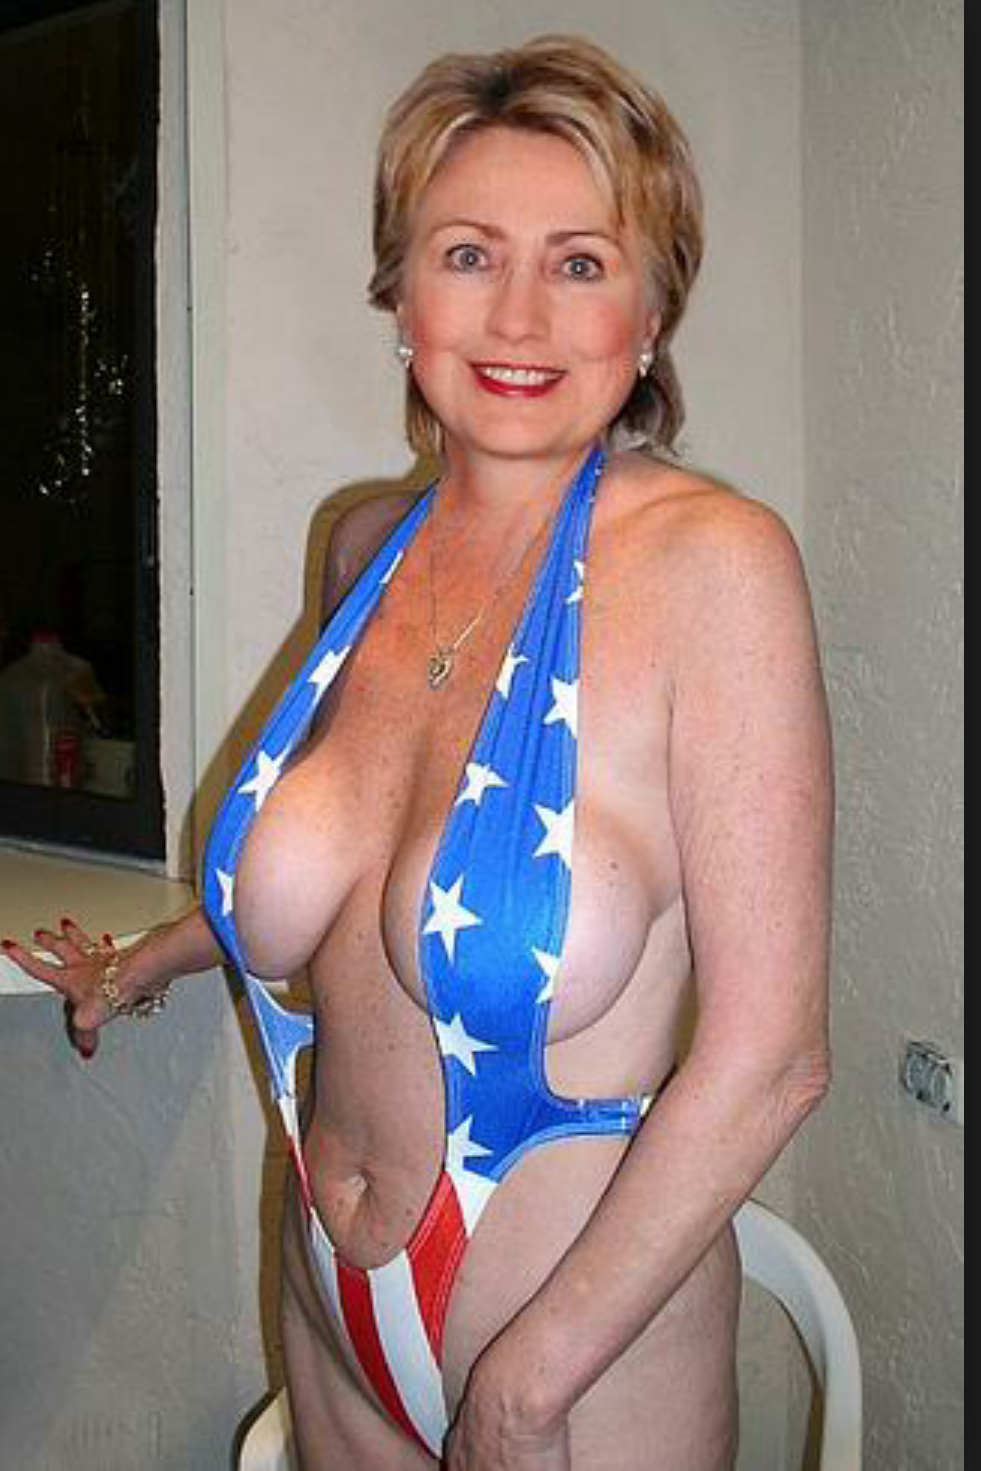 Naked Pictures Of Hillary photo 7